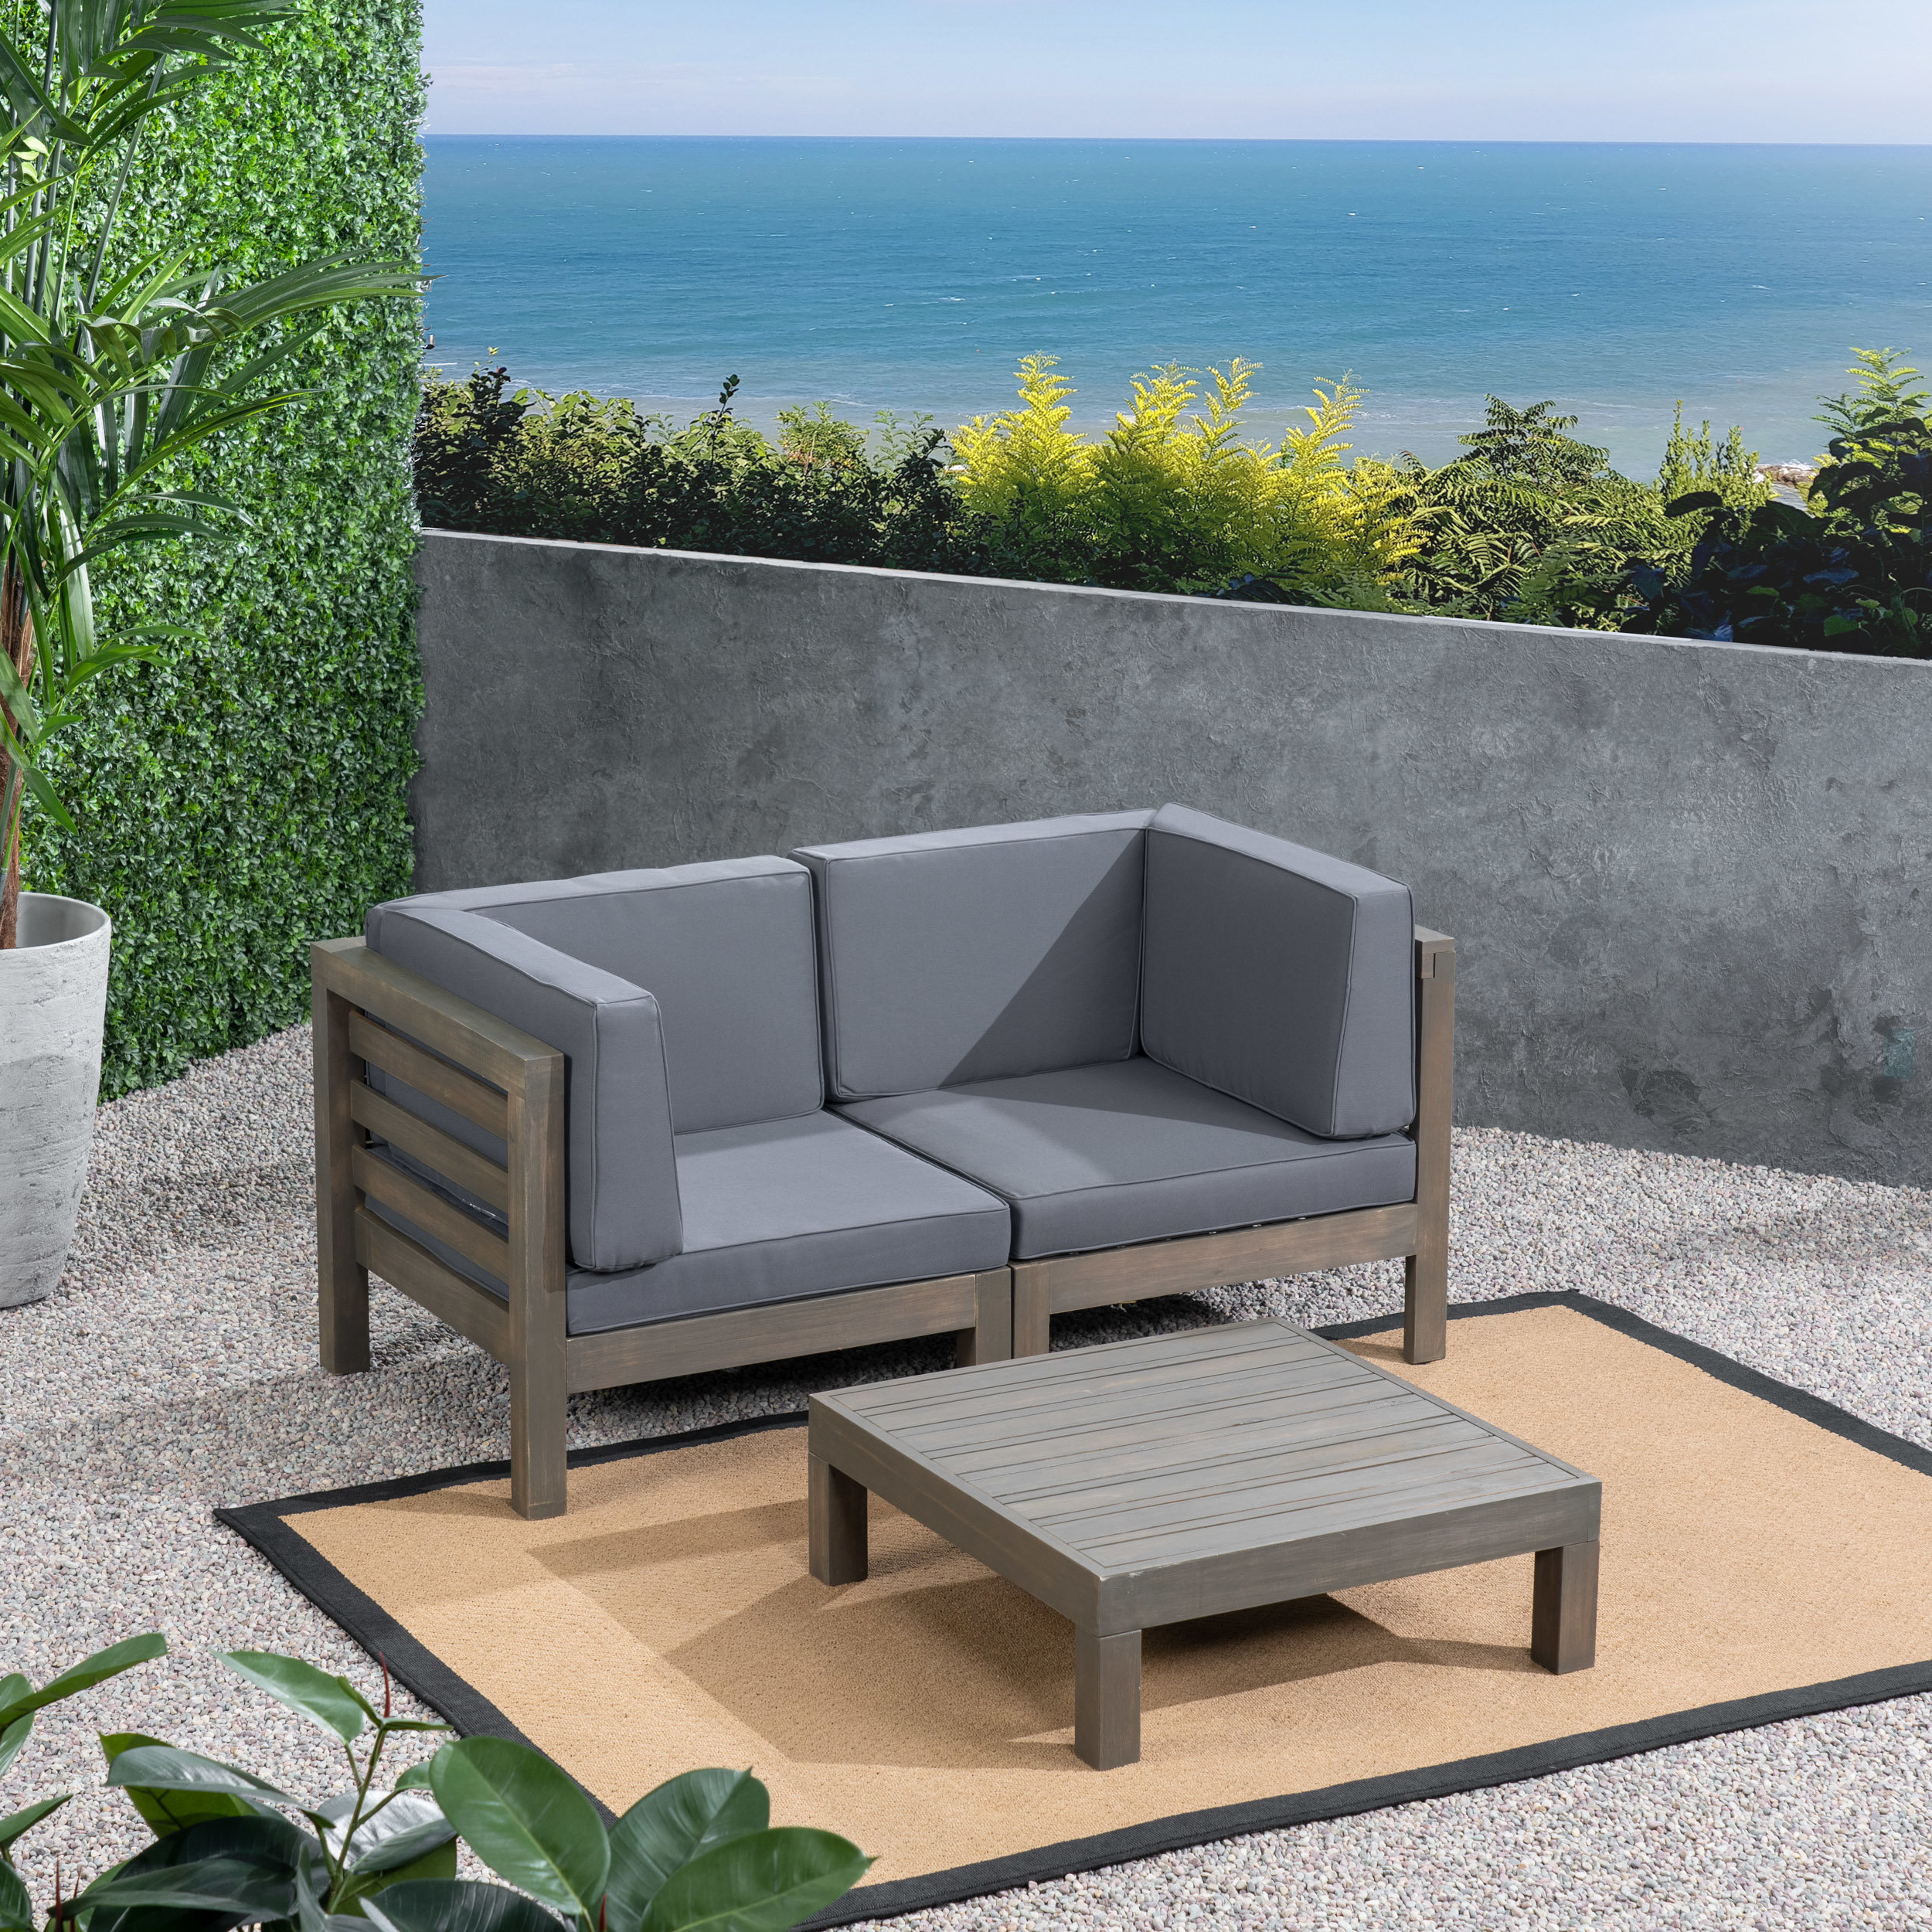 Well Liked Seaham 3 Piece Teak Sofa Seating Group With Cushions In Seaham Patio Sectionals With Cushions (View 20 of 20)